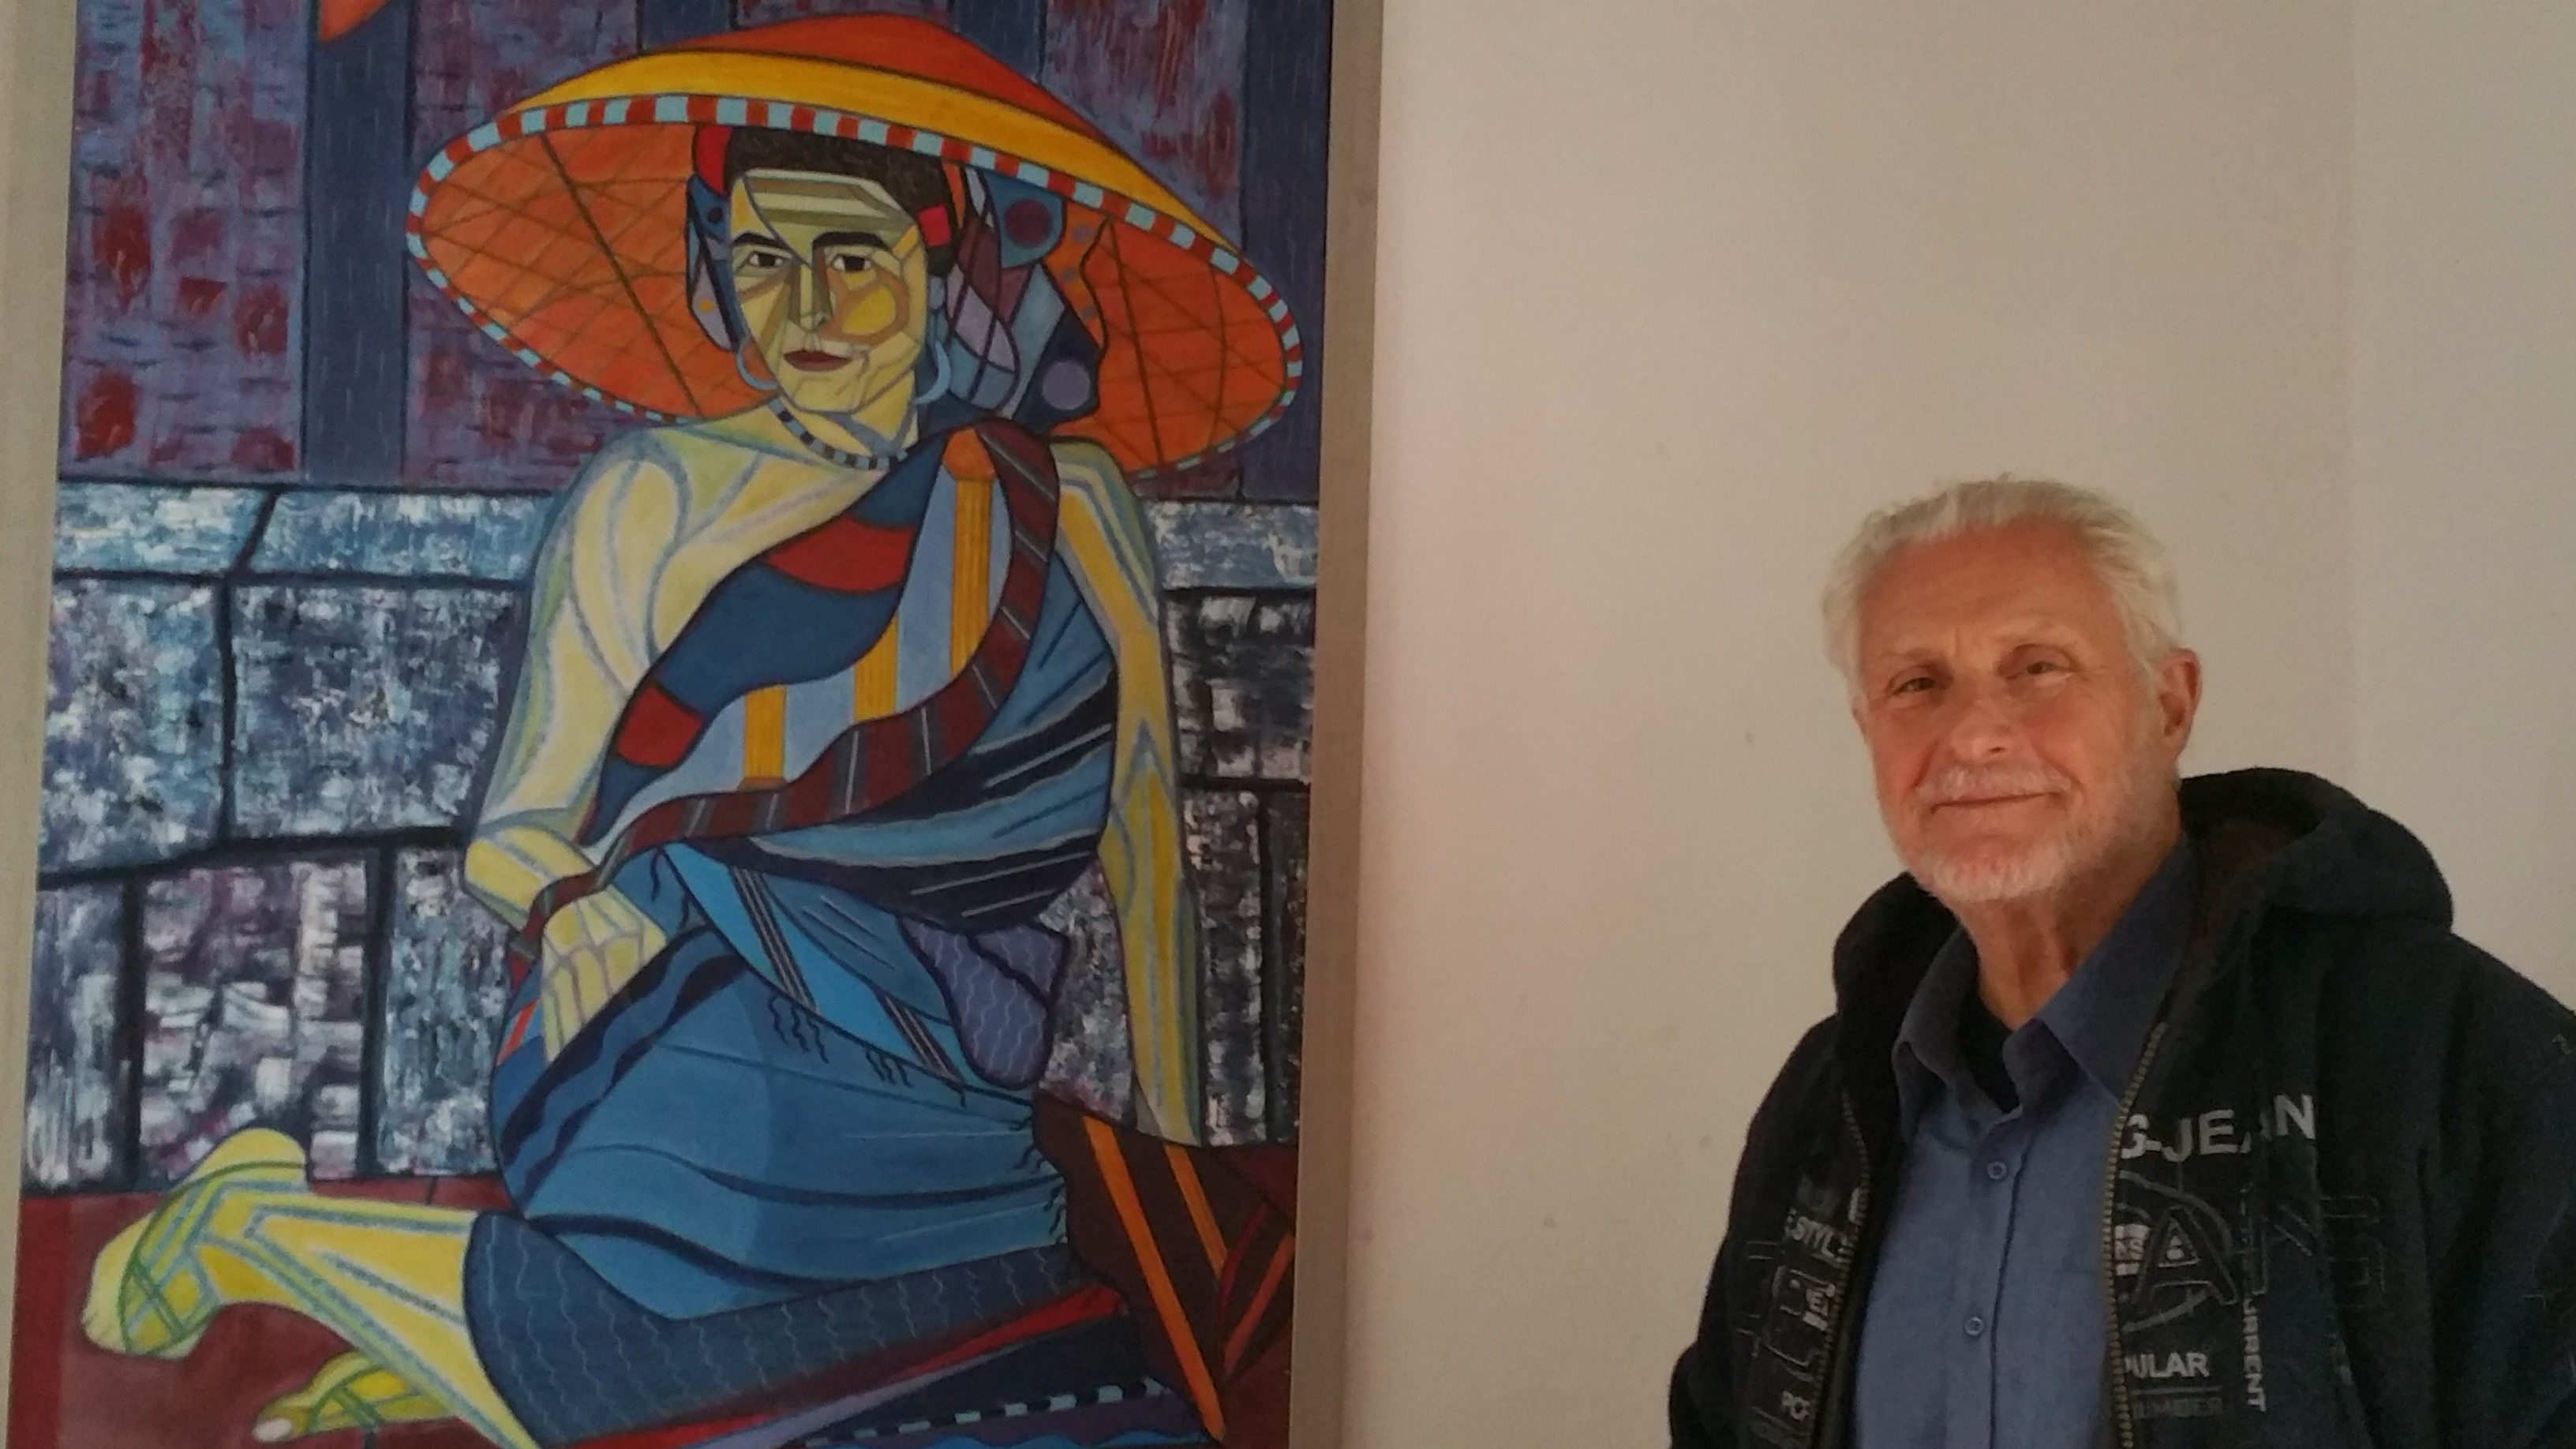 Barry Tagrin besides his portraits within the exhibit space of the Hellenic International Studies of the Arts.